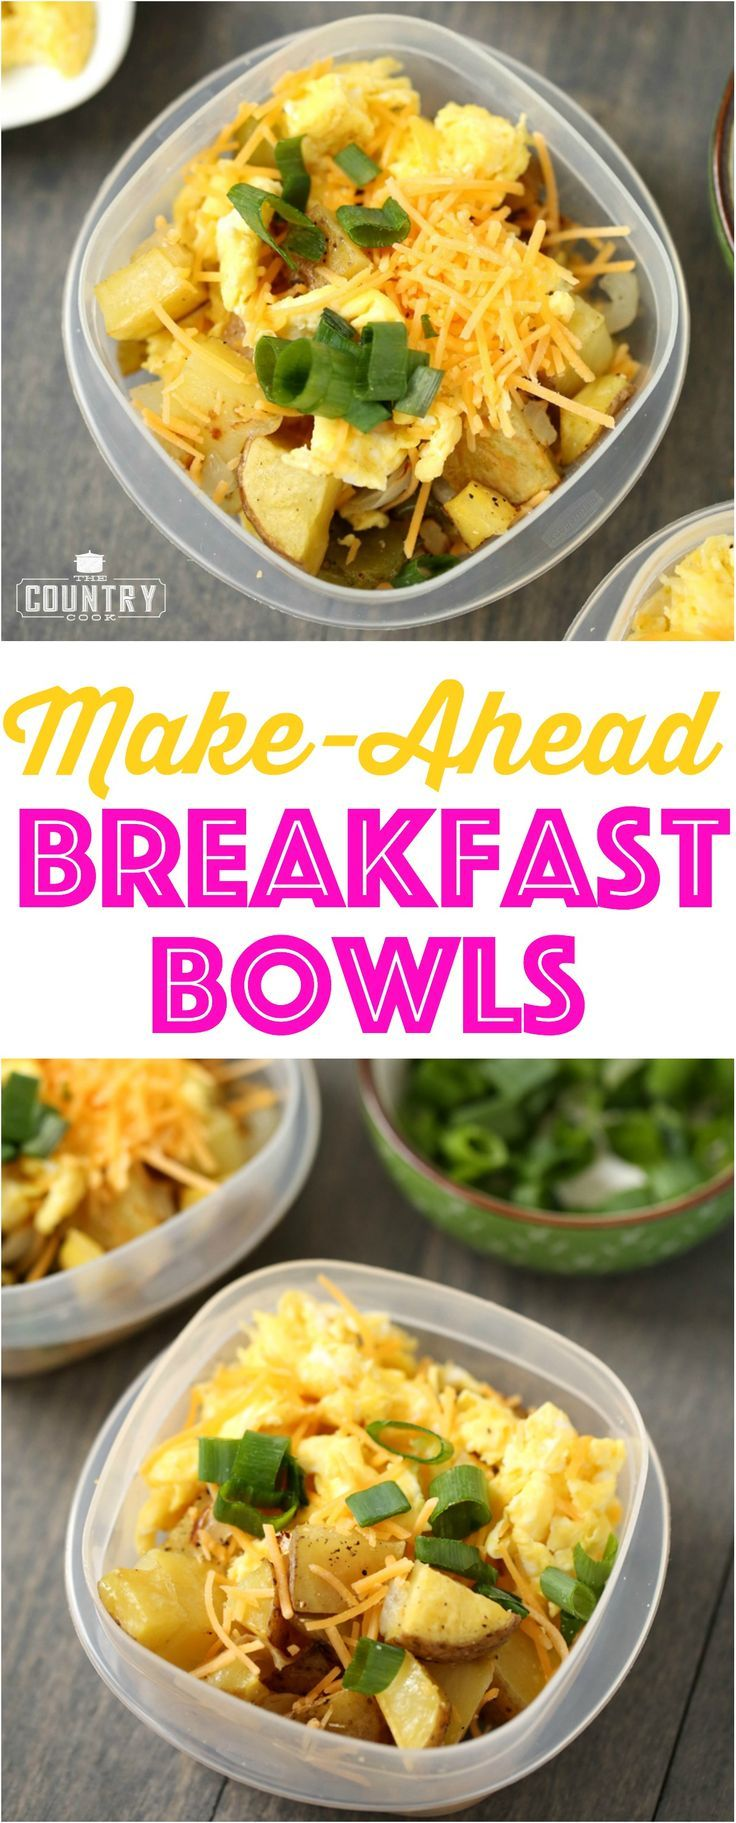 Make-Ahead Breakfast Bowls recipe from The Country Cook. Easy, protein-filled and filling!